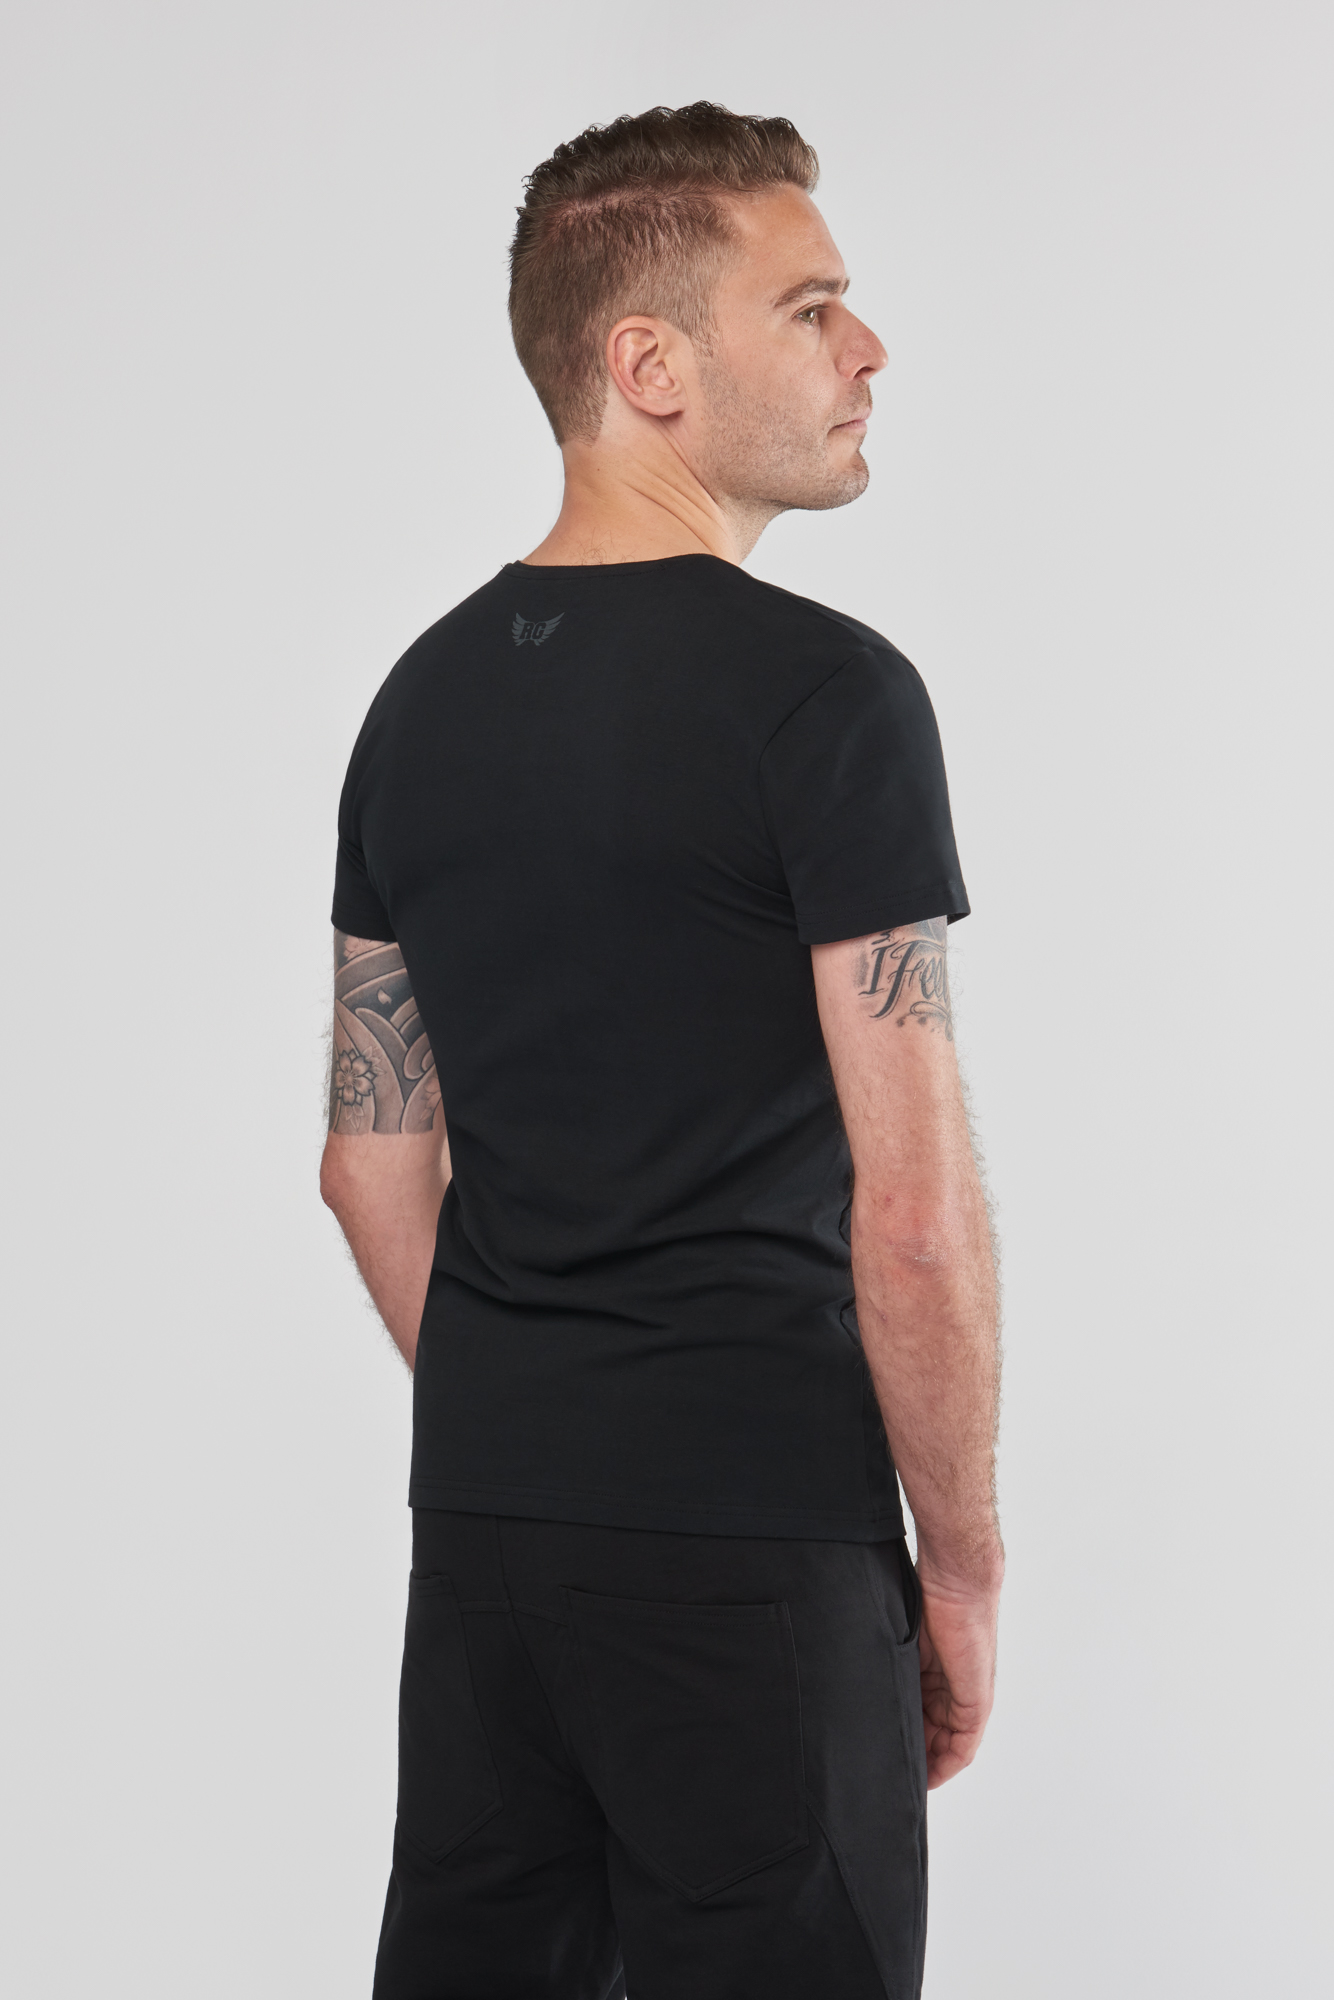 Yoga Tee Moksha Zen – Urban Black from Renegade Guru